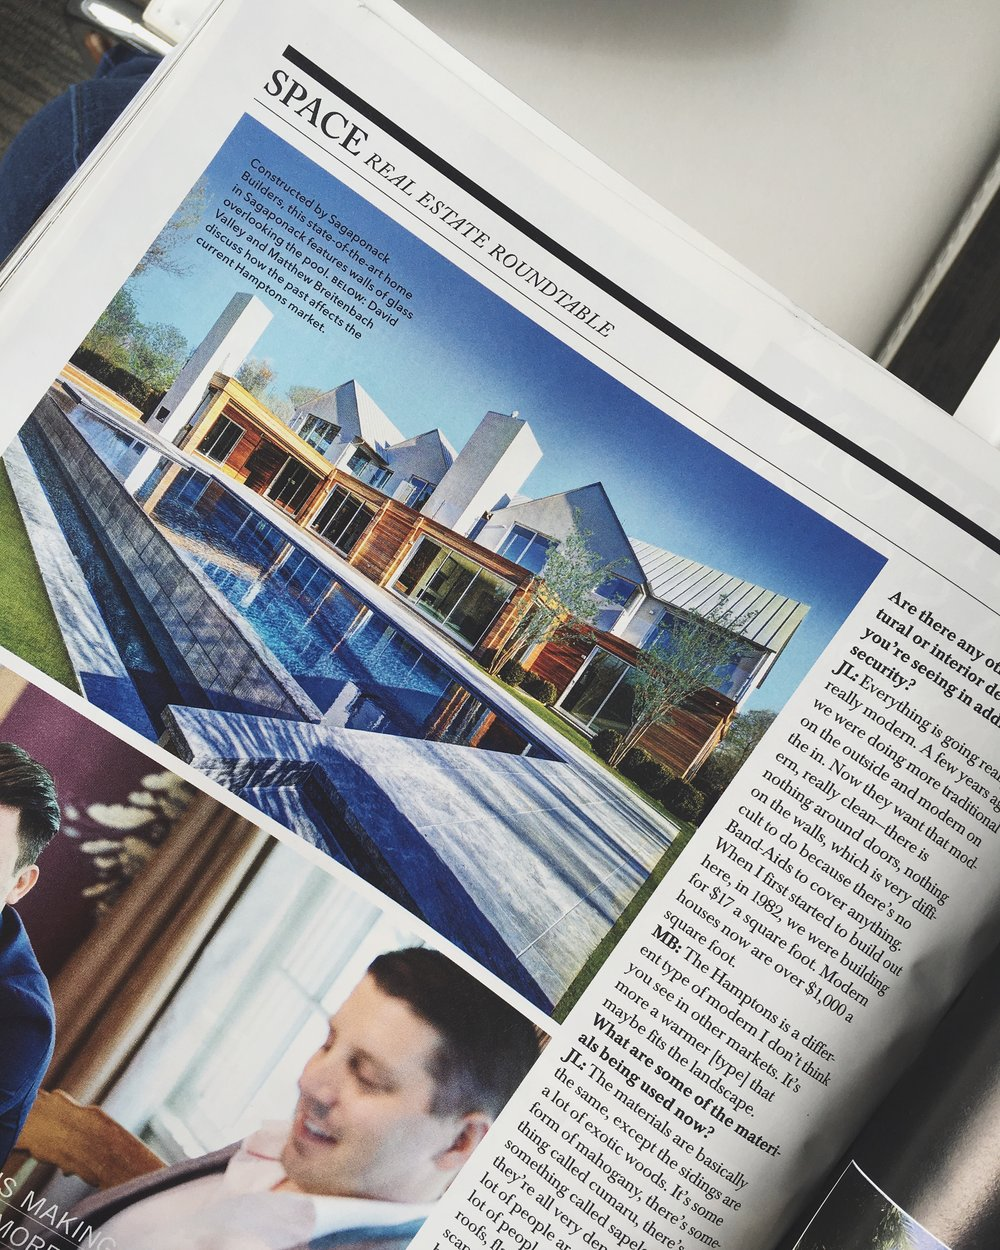 One of my completed projects located on 74 Ericas Lane in Sagaponack NY, was recently featured in Hamptons Magazine.